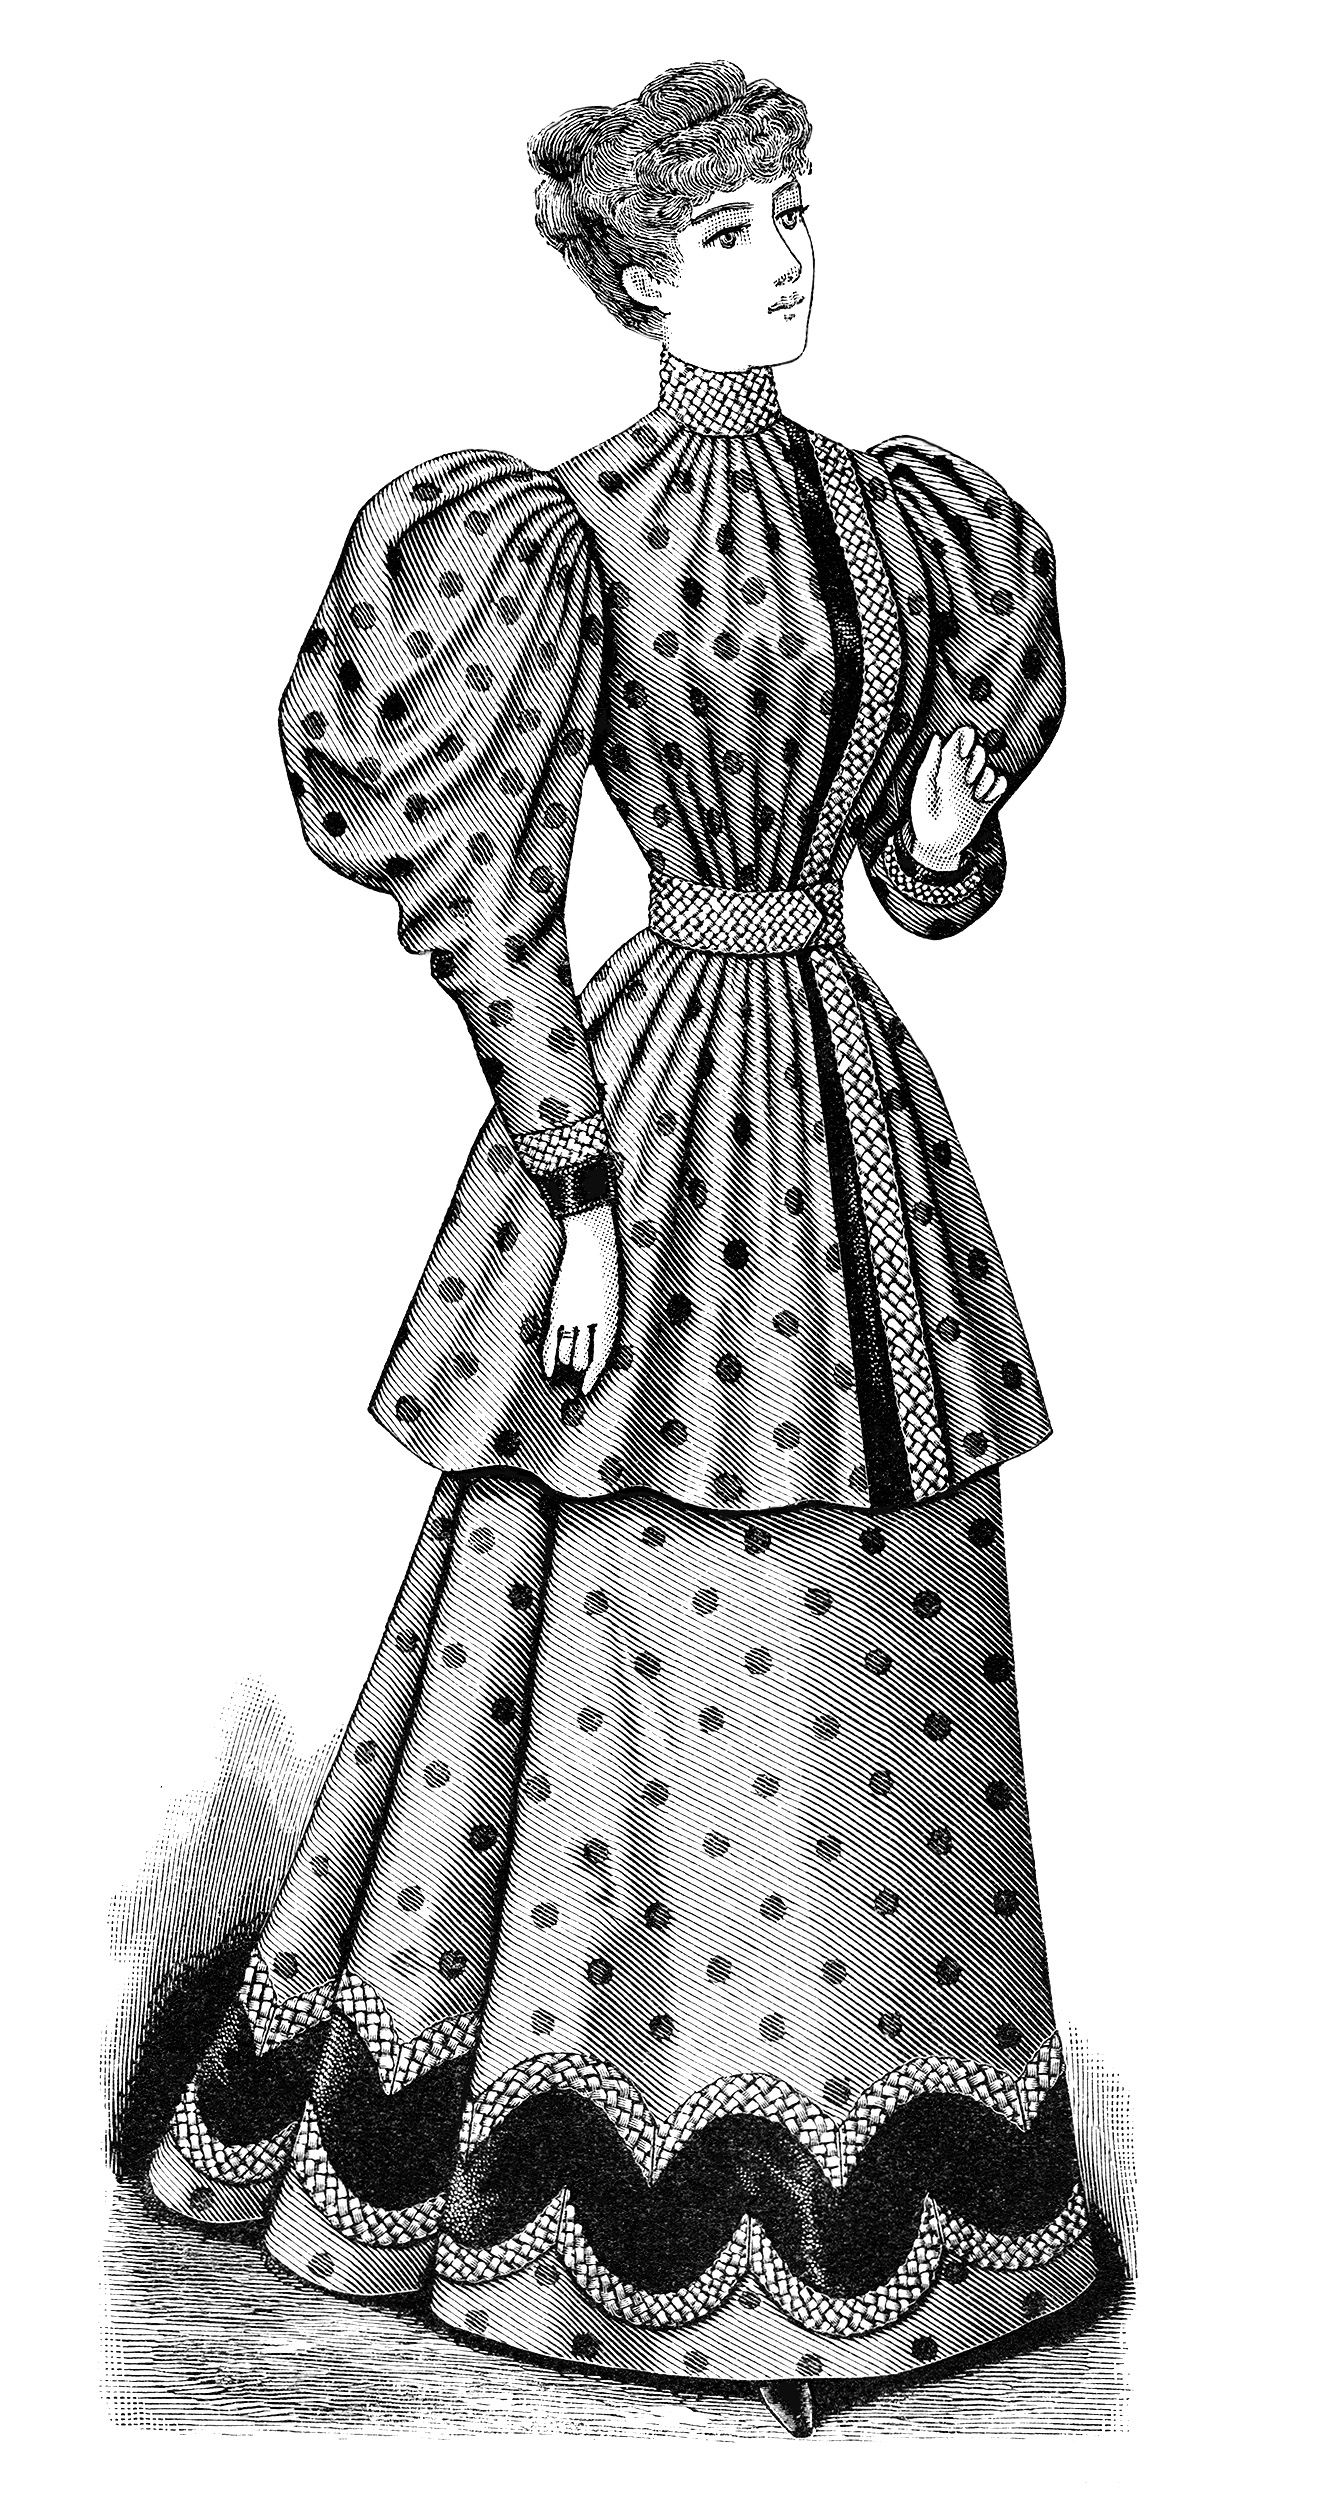 Fashion for women clip art - Black And White Clip Art Edwardian Fashion Vintage Dress Clipart Victorian Lady Victorian Gown Image Antique Clothing For Women Vintage Pinterest